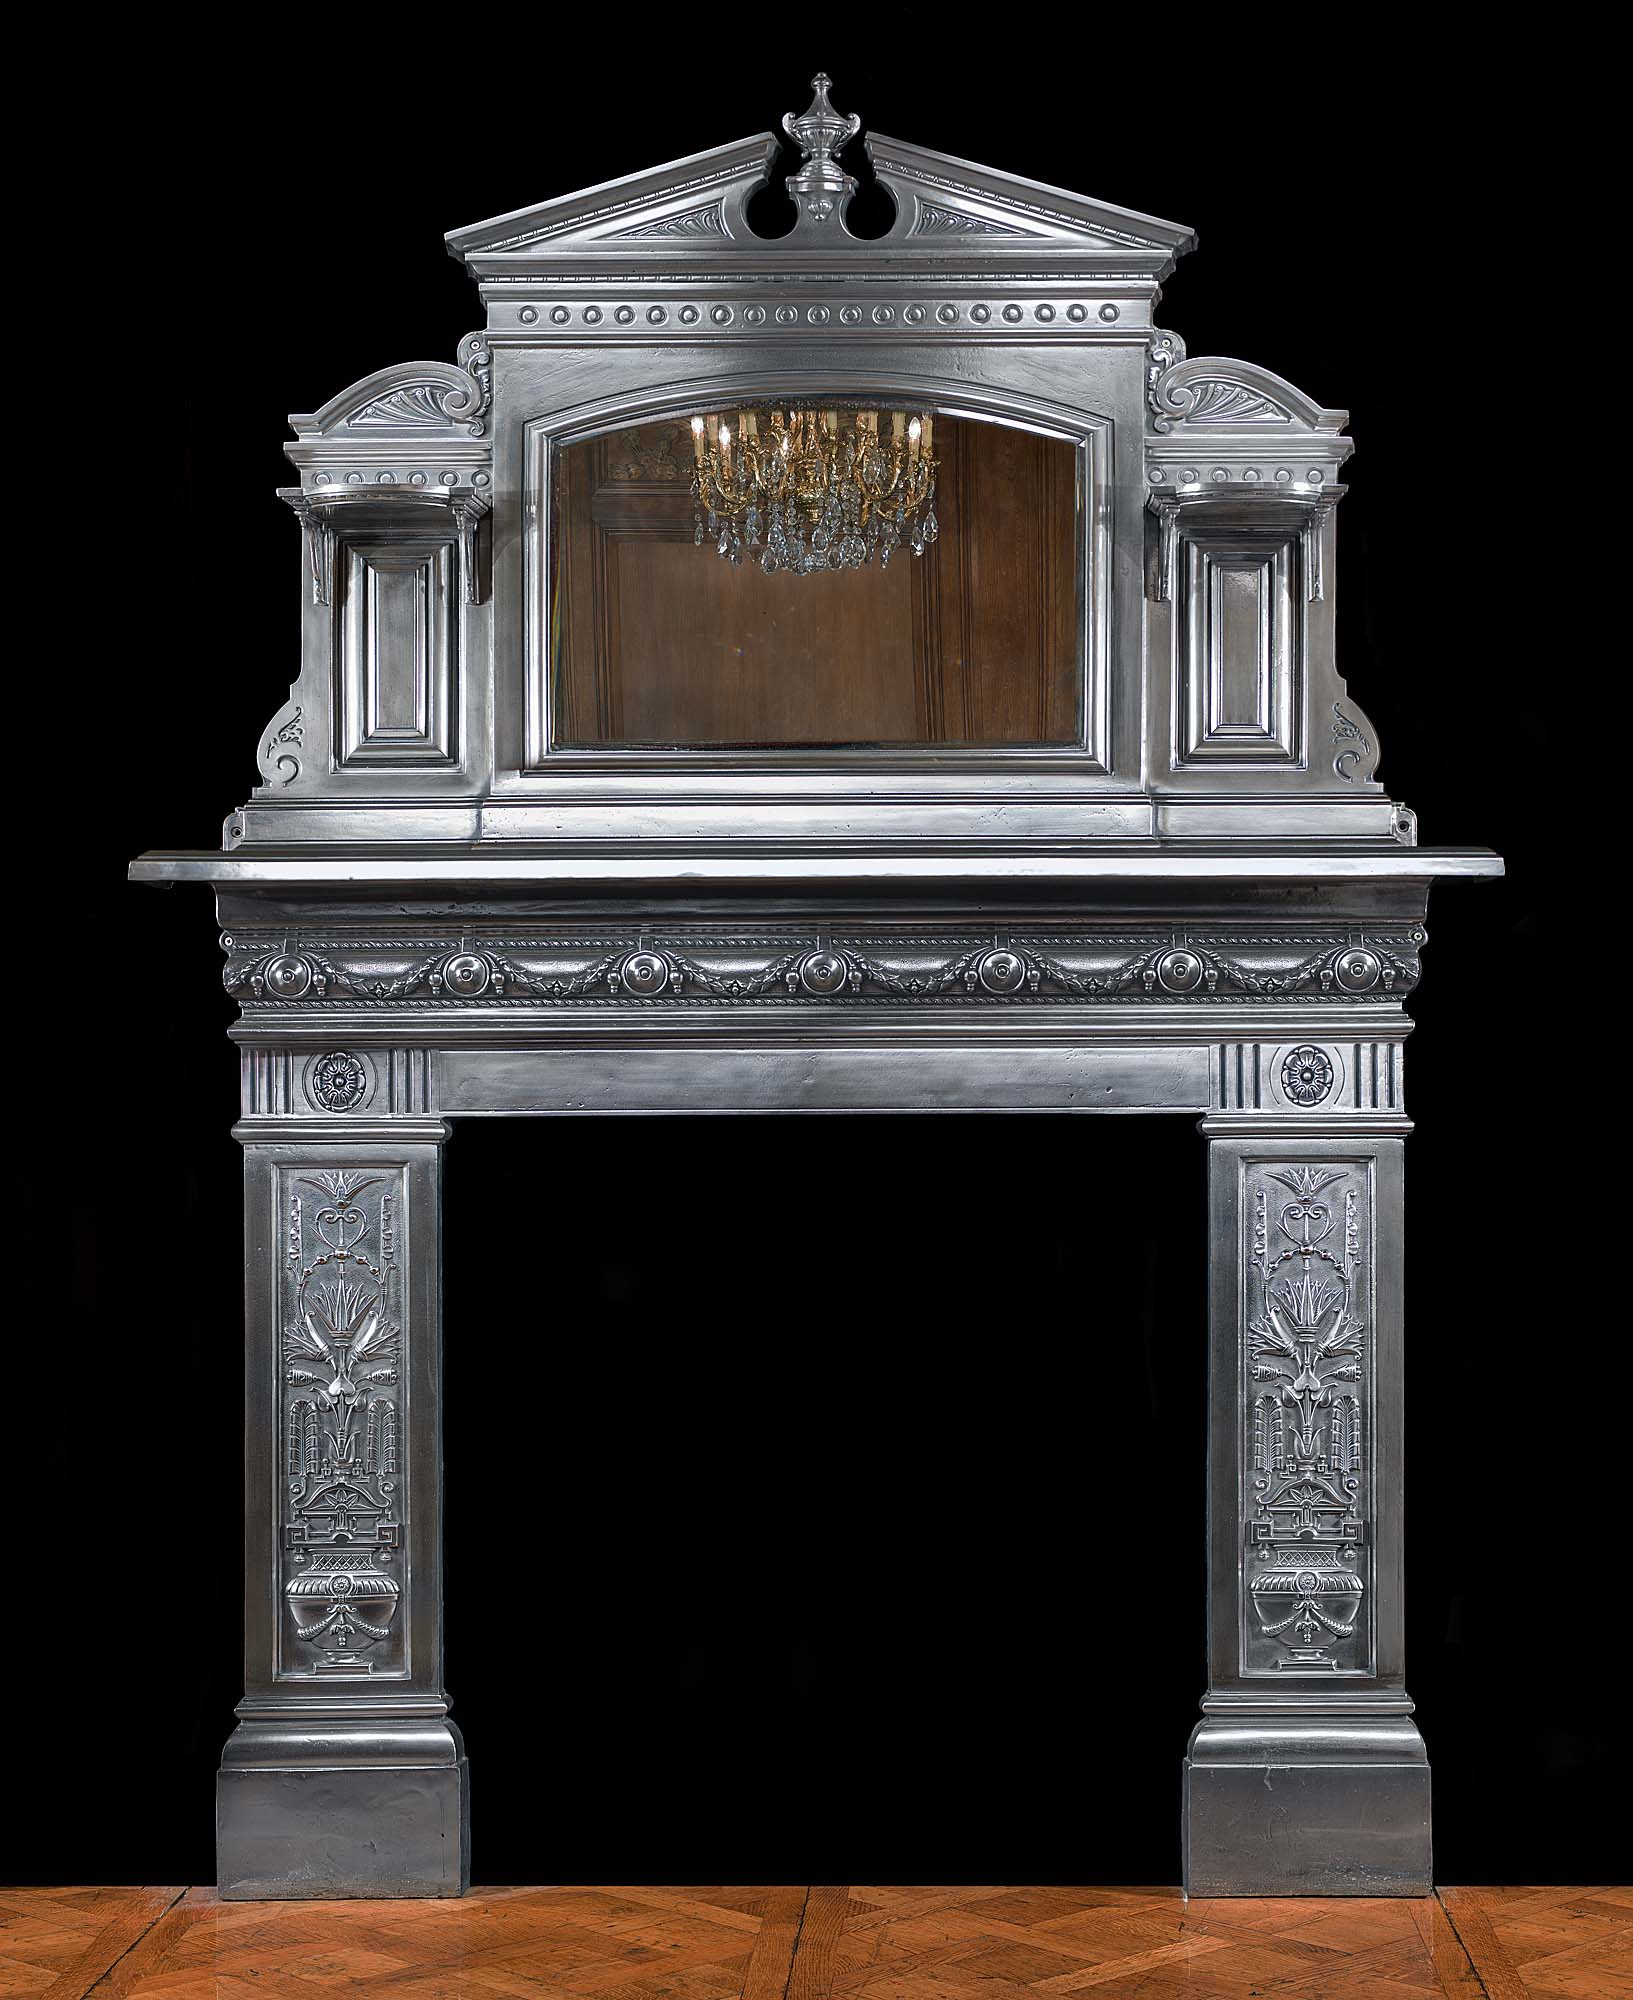 An imposing and tall Victorian cast iron fireplace surround and overmantel